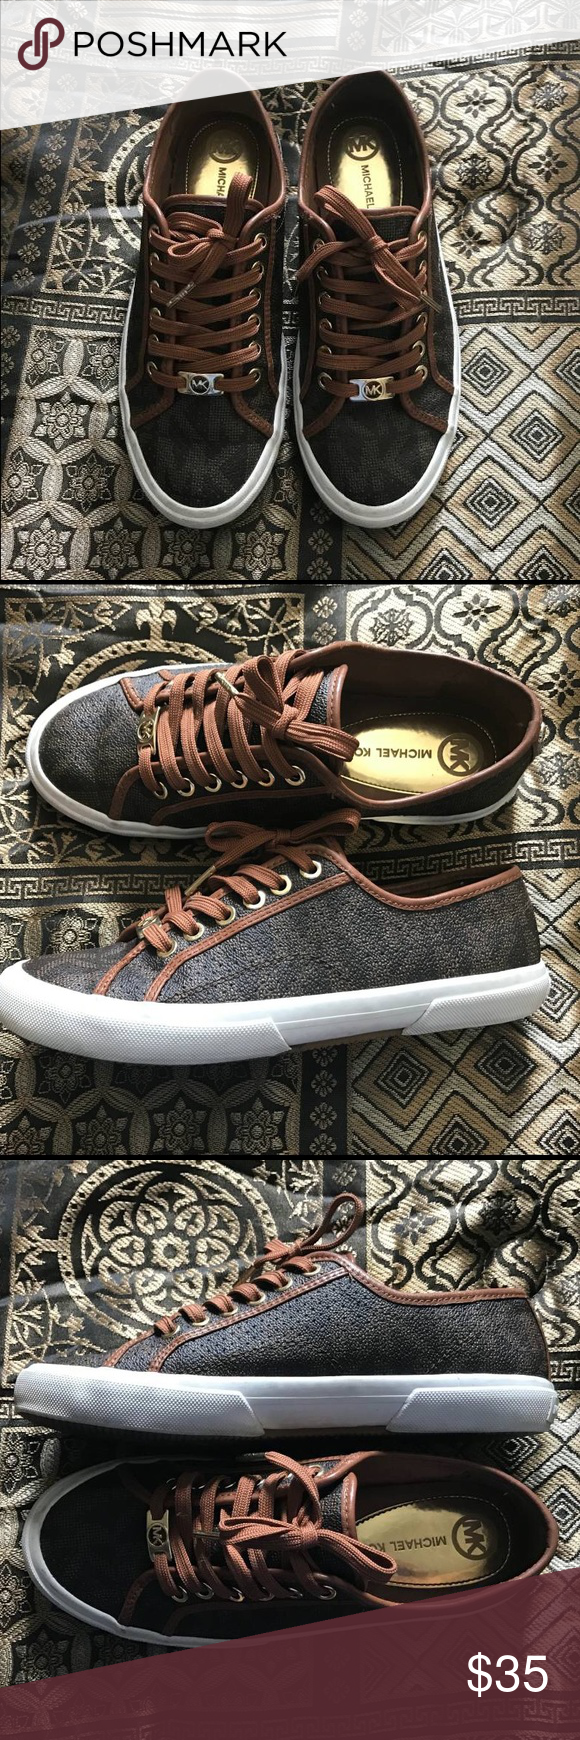 Michael Kors Shoes 👠 !!! Almost new very clean they are size 8 💯 KORS Michael Kors Shoes Sneakers